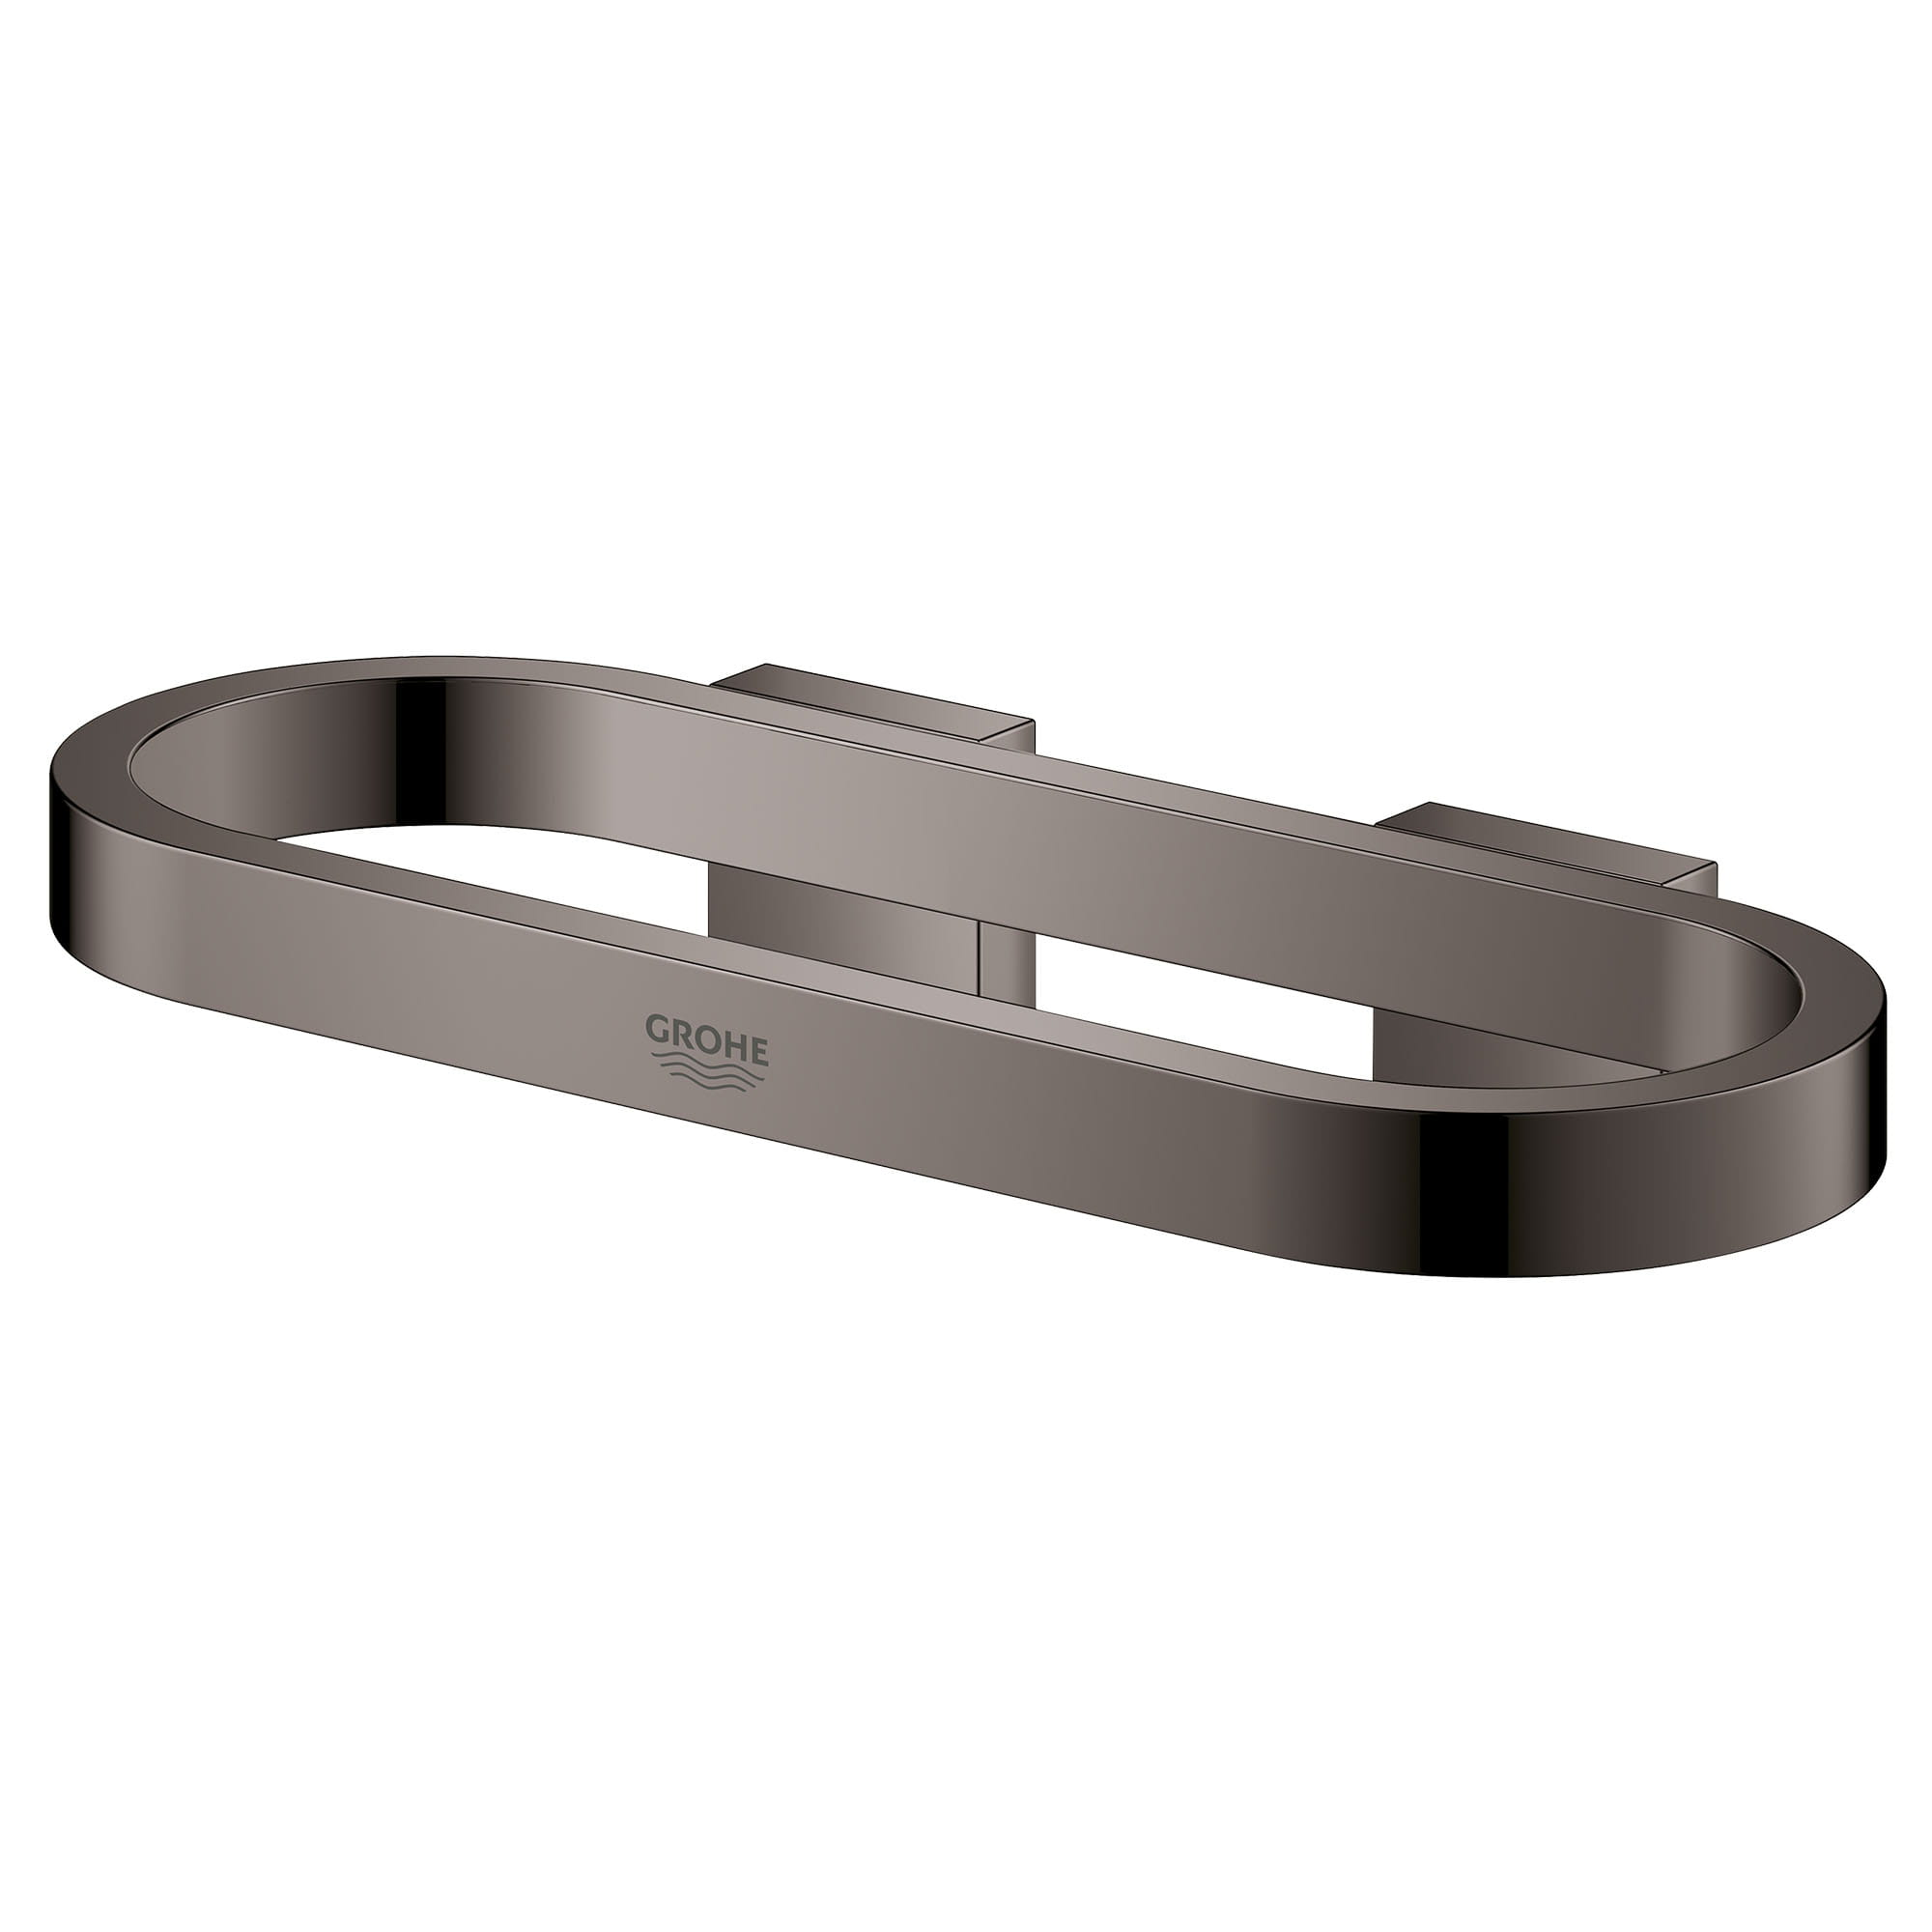 Towel Ring GROHE HARD GRAPHITE